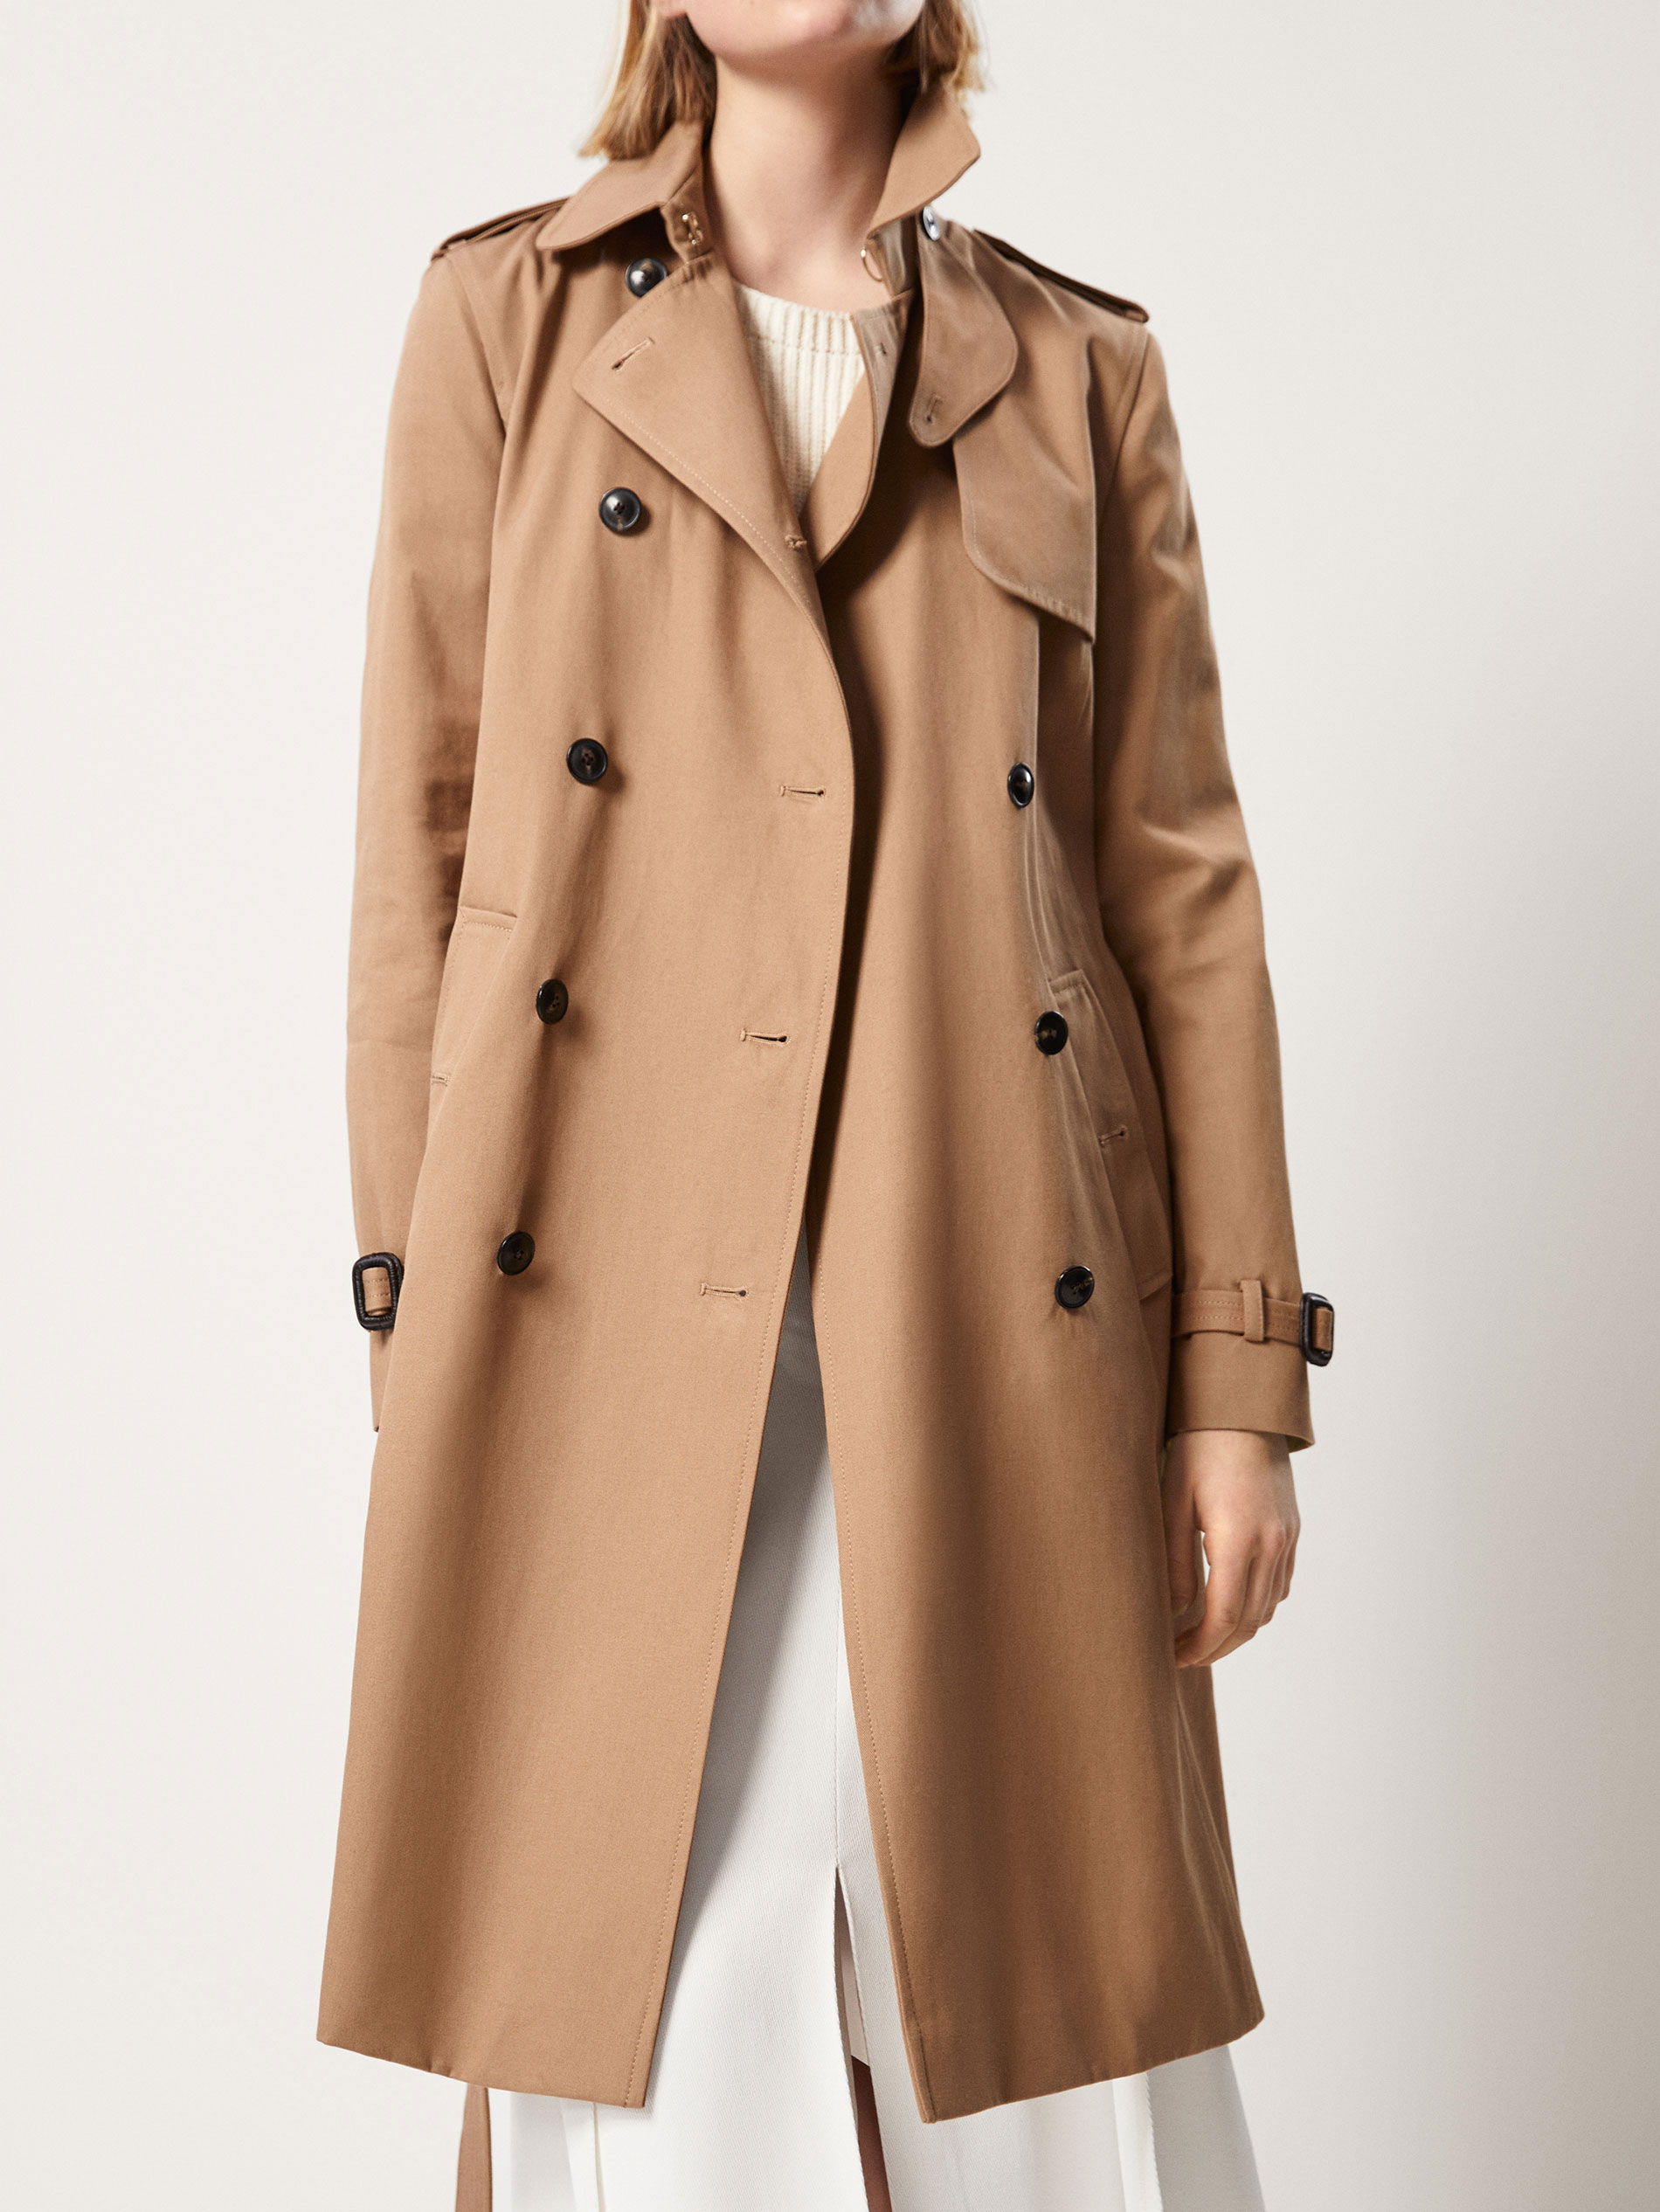 Massimo Dutti Classic Camel Trench Coat At 163 149 Love The